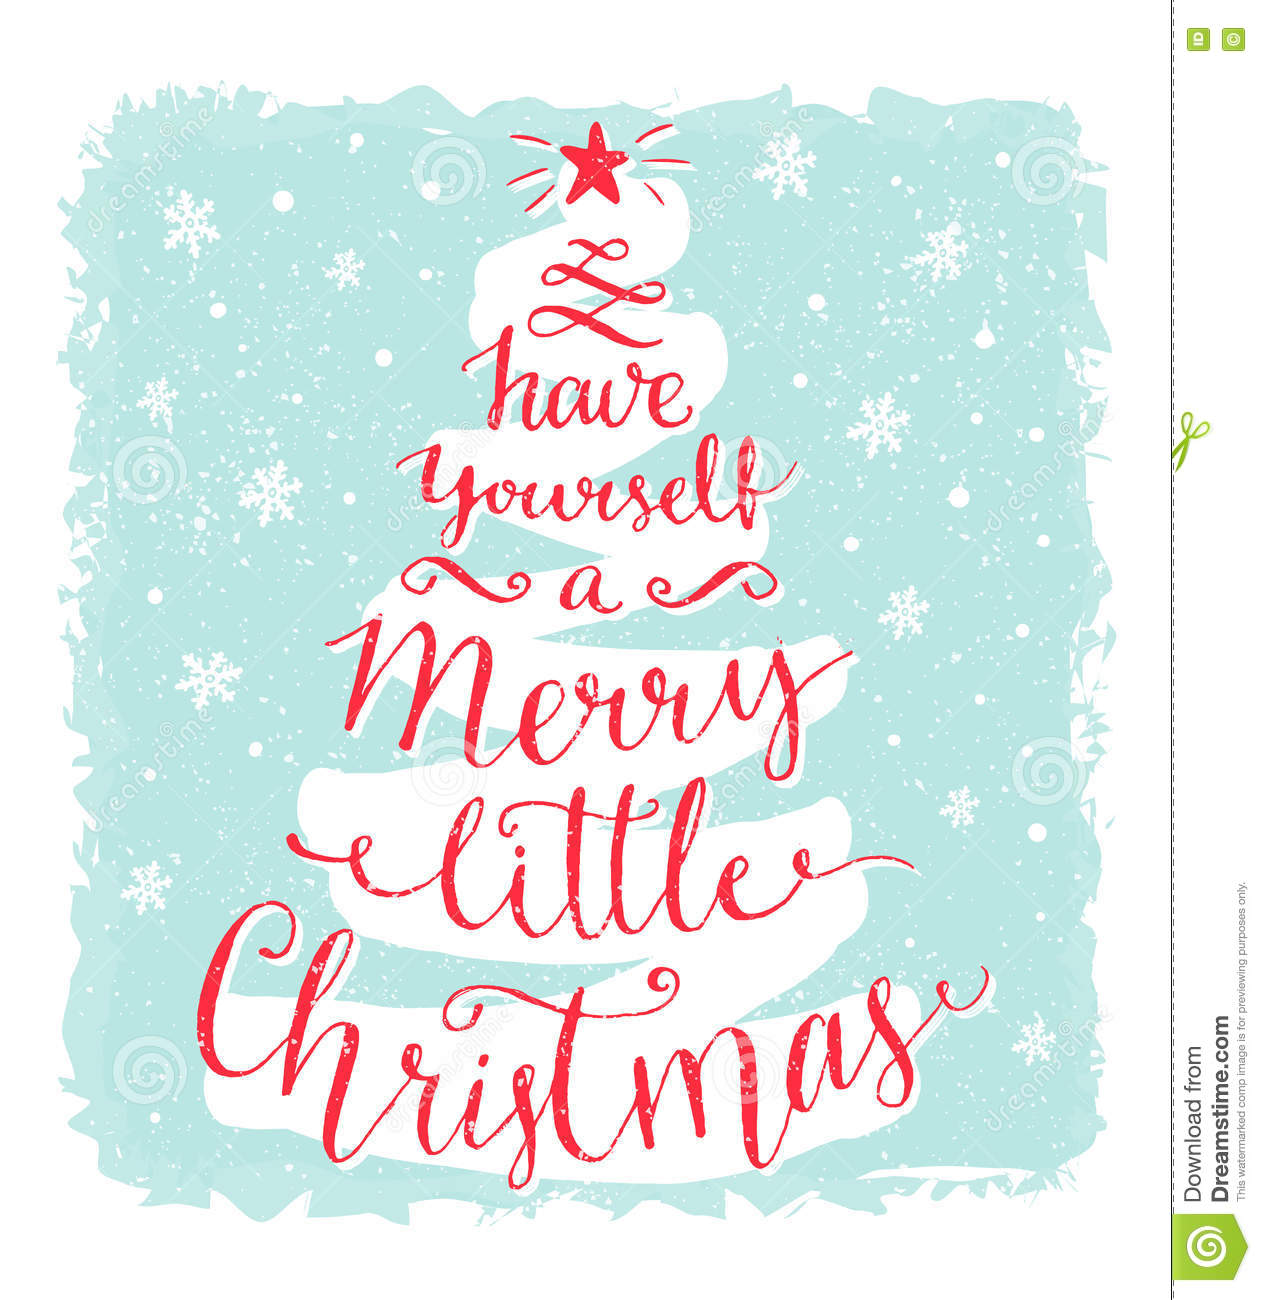 have yourself a merry little christmas greeting card with calligraphy in the shape of xmas